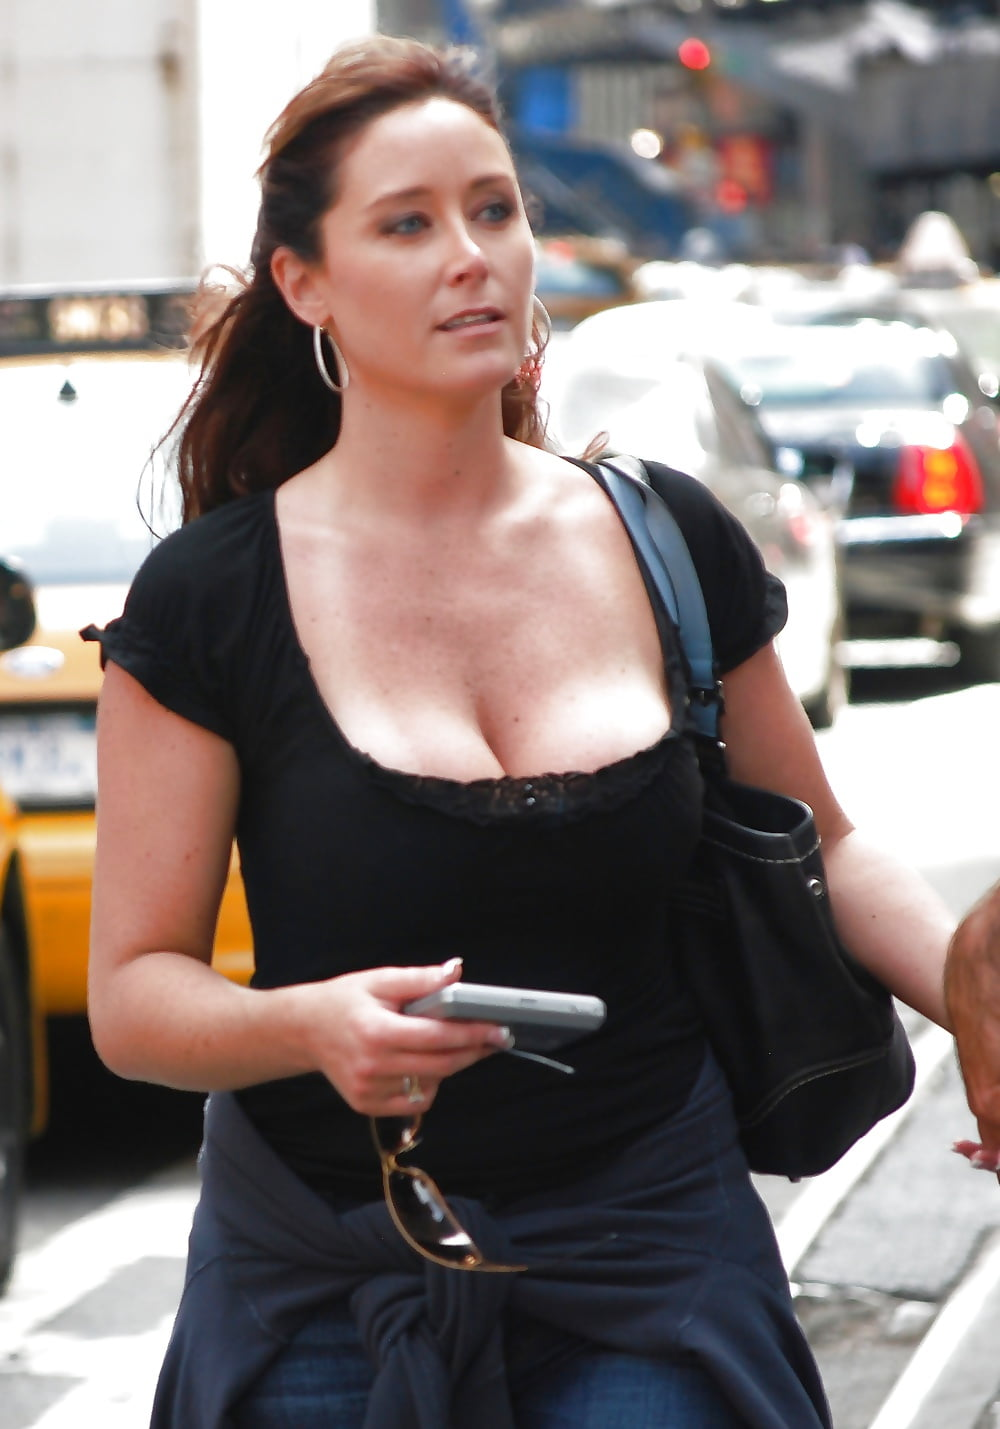 Busty boobs on street, brother and sister hot and sexy fuking picturs